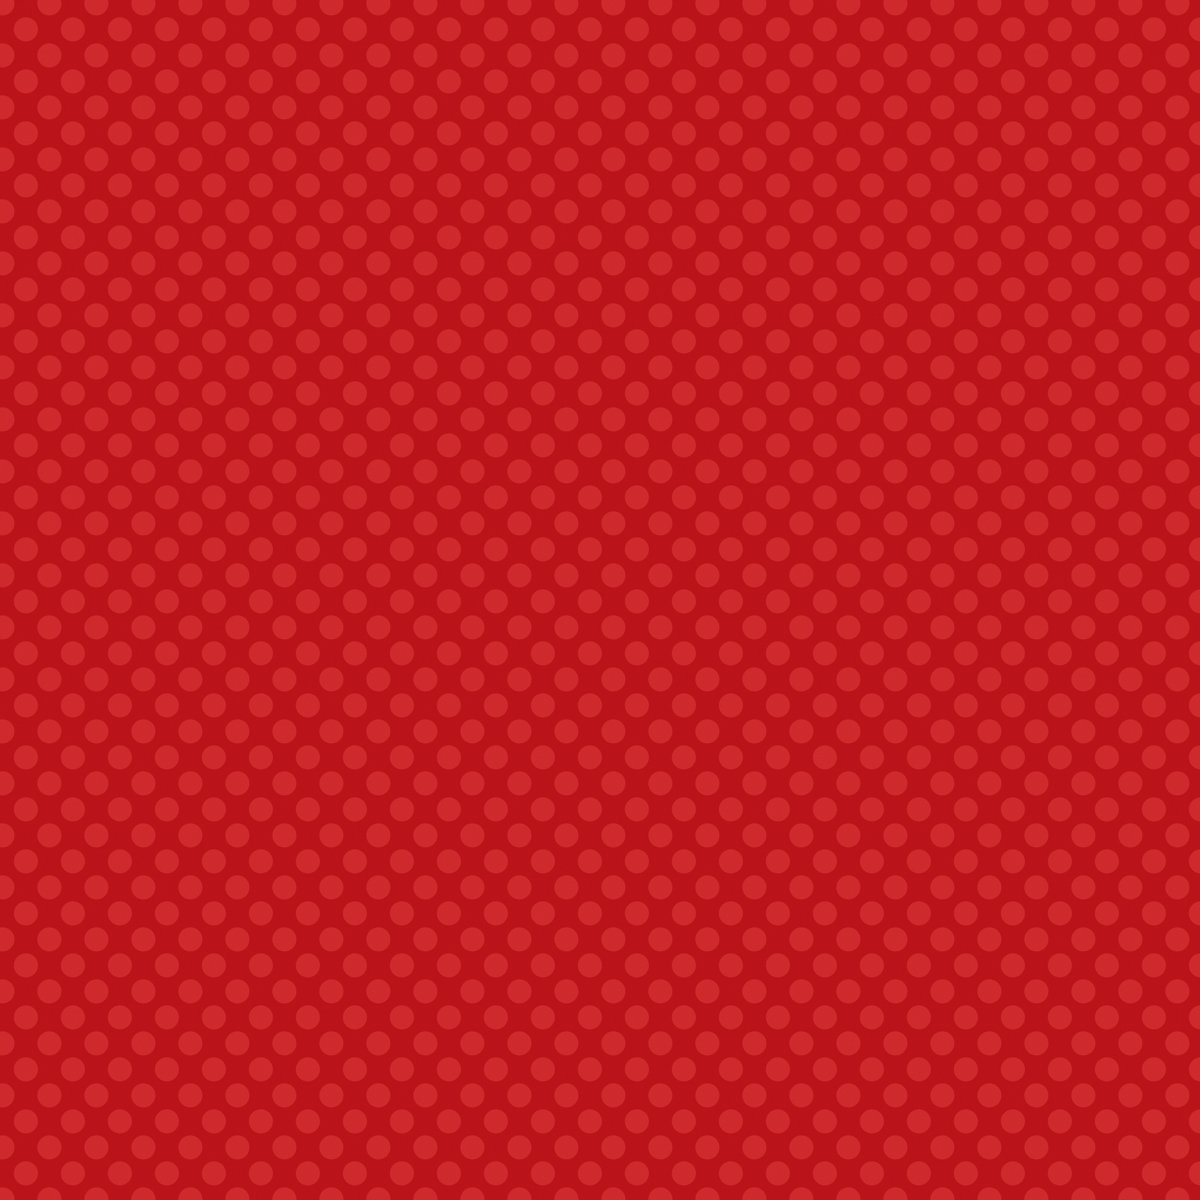 Core Basics Patterned Cardstock 12 X12 Inches Red Large Dot,12 Sheets(12 Pack)